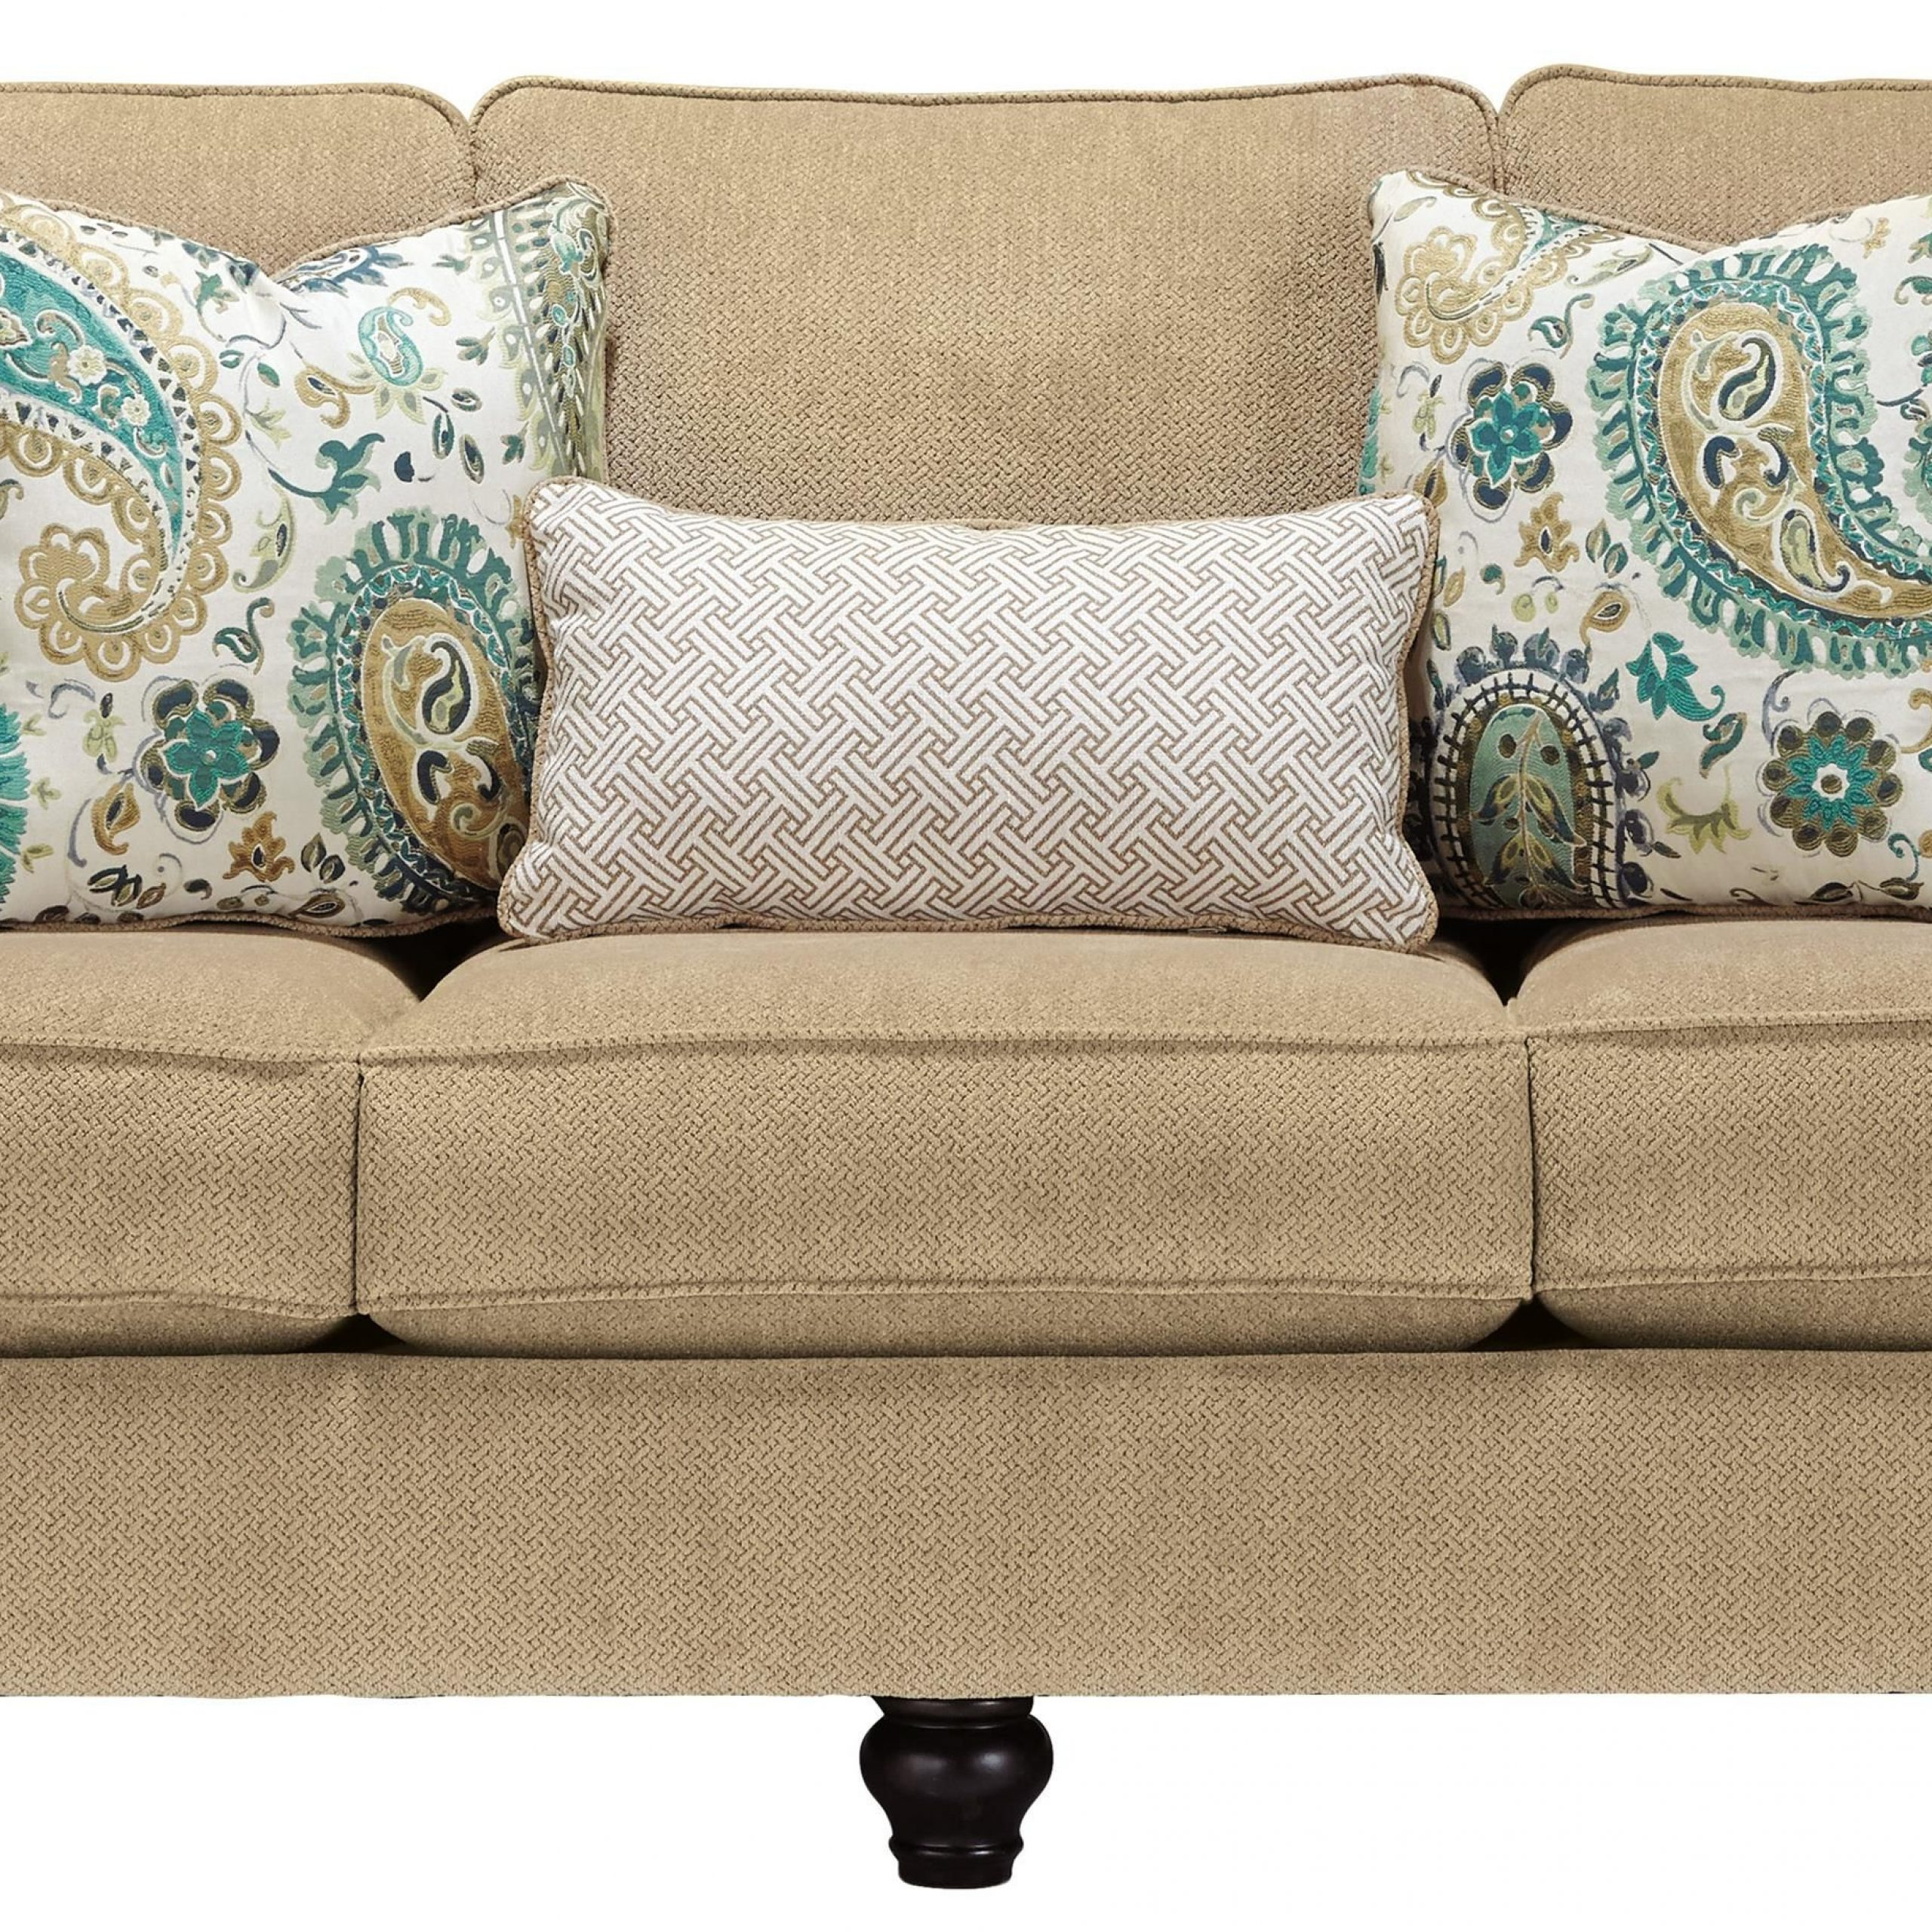 Lochian Sofa With Reversible Coil Seat Cushions & English Within Most Current Debbie Coil Sectional Futon Sofas (View 14 of 25)